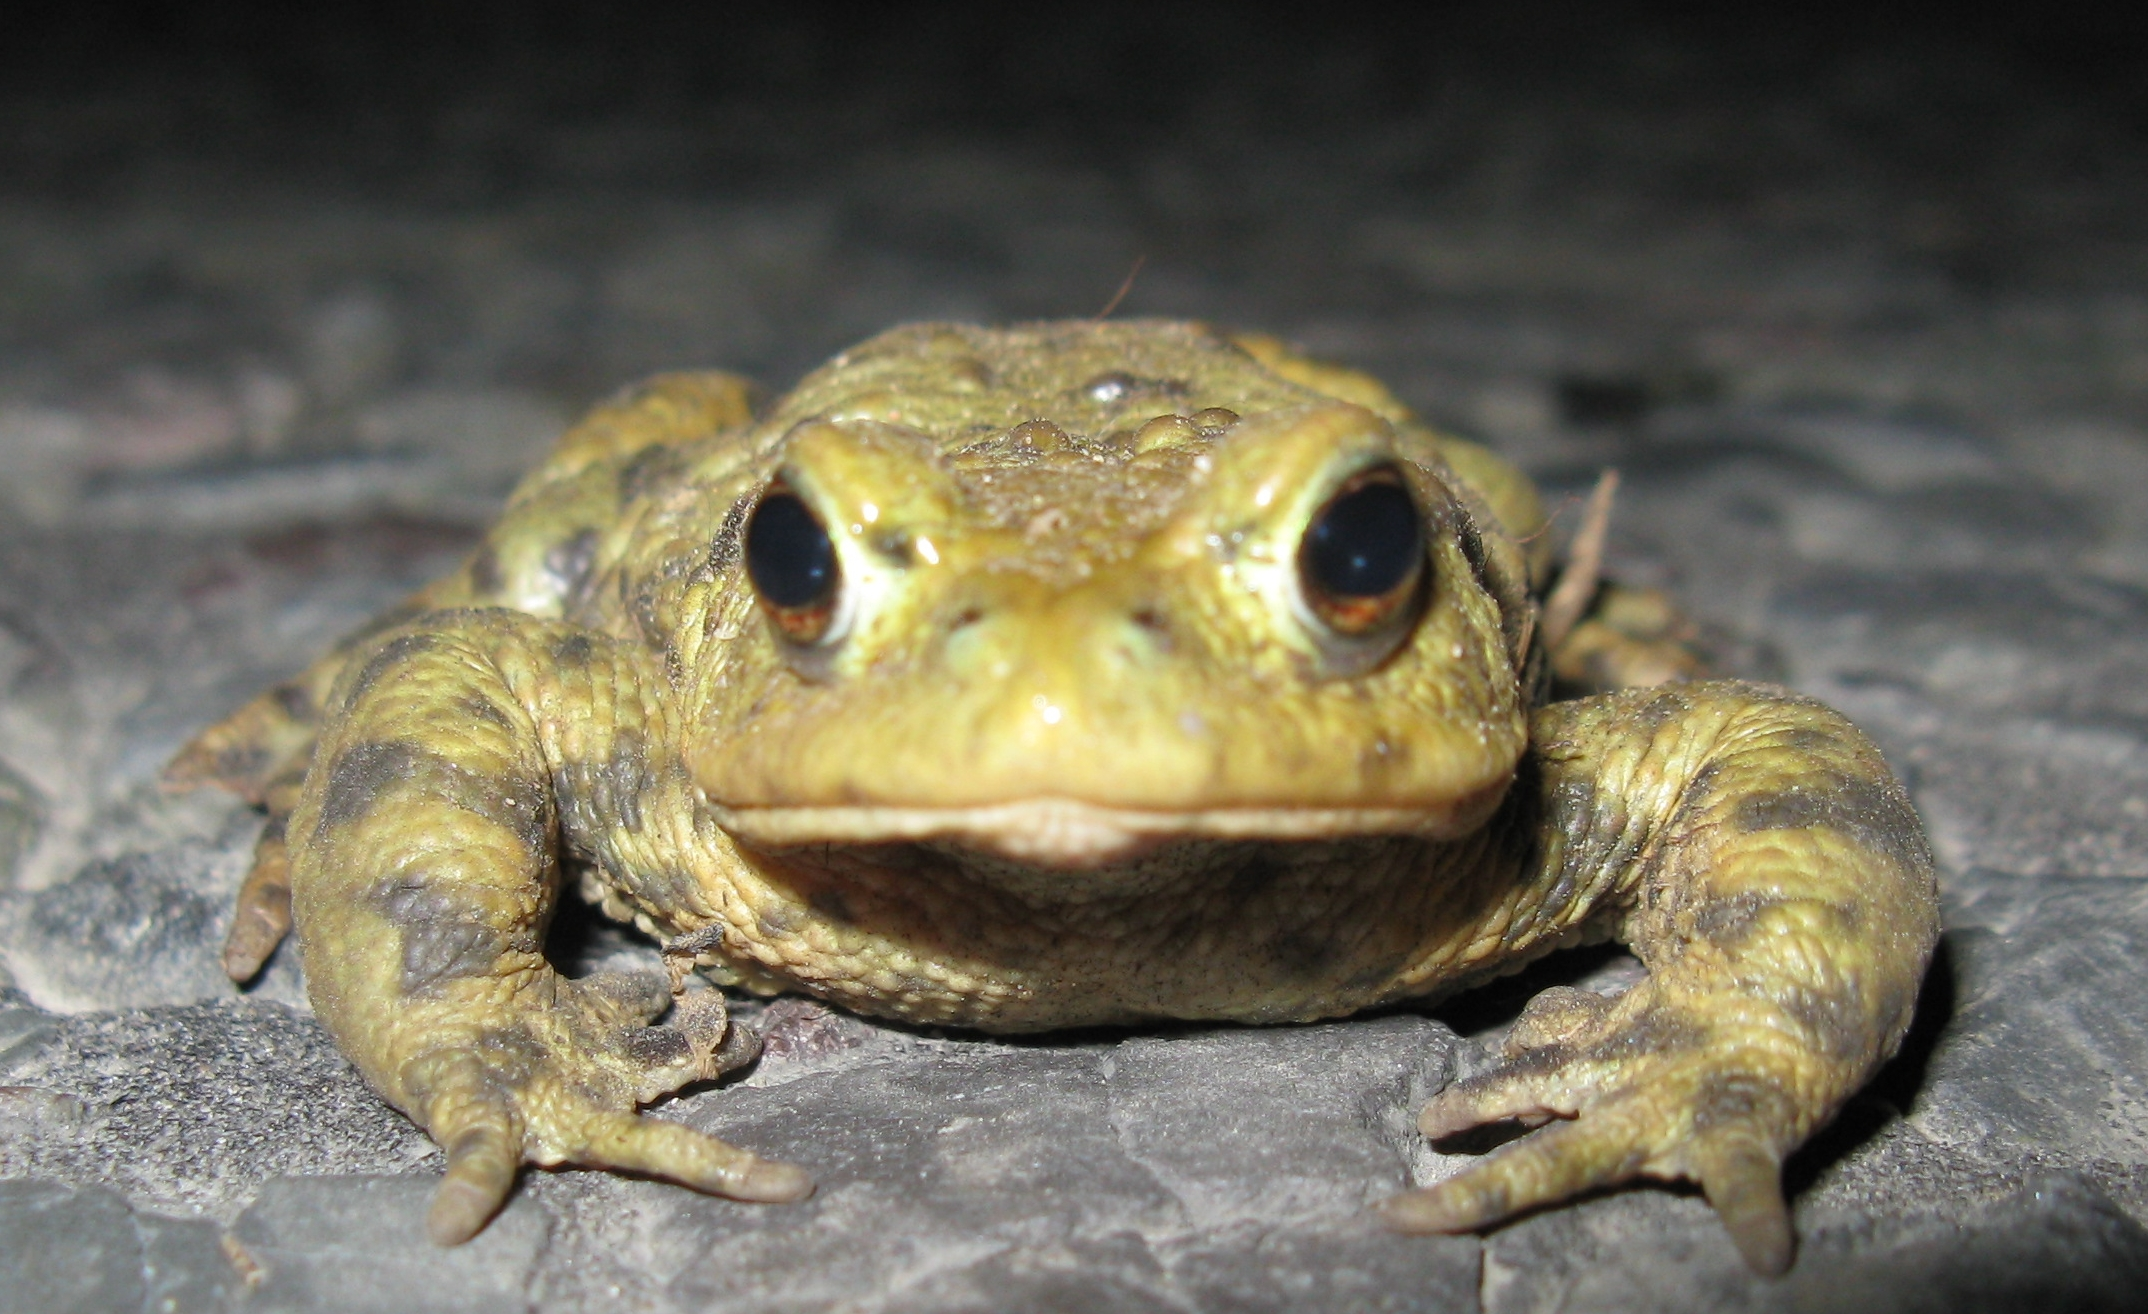 Toads in decline in Hampshire